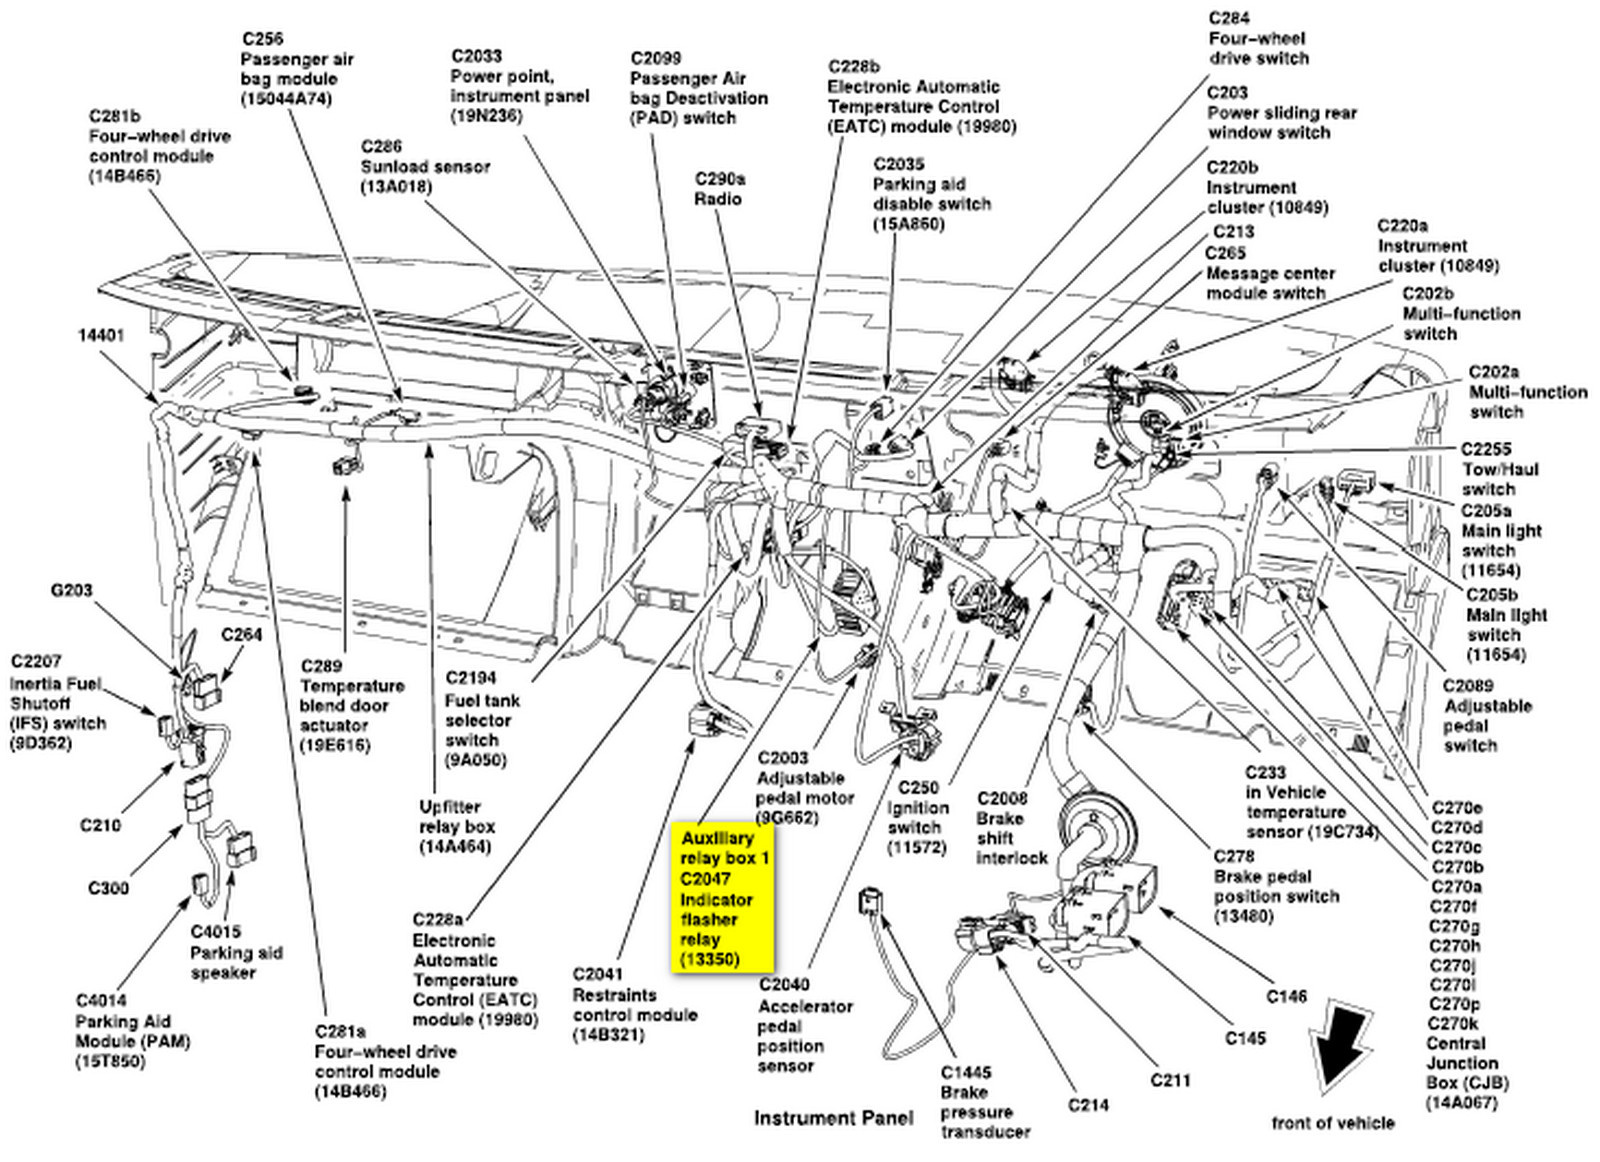 2007 2008 Gmc Acadia V6 3 6l Serpentine Belt Diagram likewise 1tlx1 Install Serpentine Belt 2006 Pontiac Torrent likewise 2005 2012 nissan xterra air fuel o2 sensor location together with 2012 Toyota Ta a Fuse Box Diagram also 7pkto Toyota Toyota Tundra 2007 2443 Secondary Air Injection. on 2012 toyota tundra engine diagram